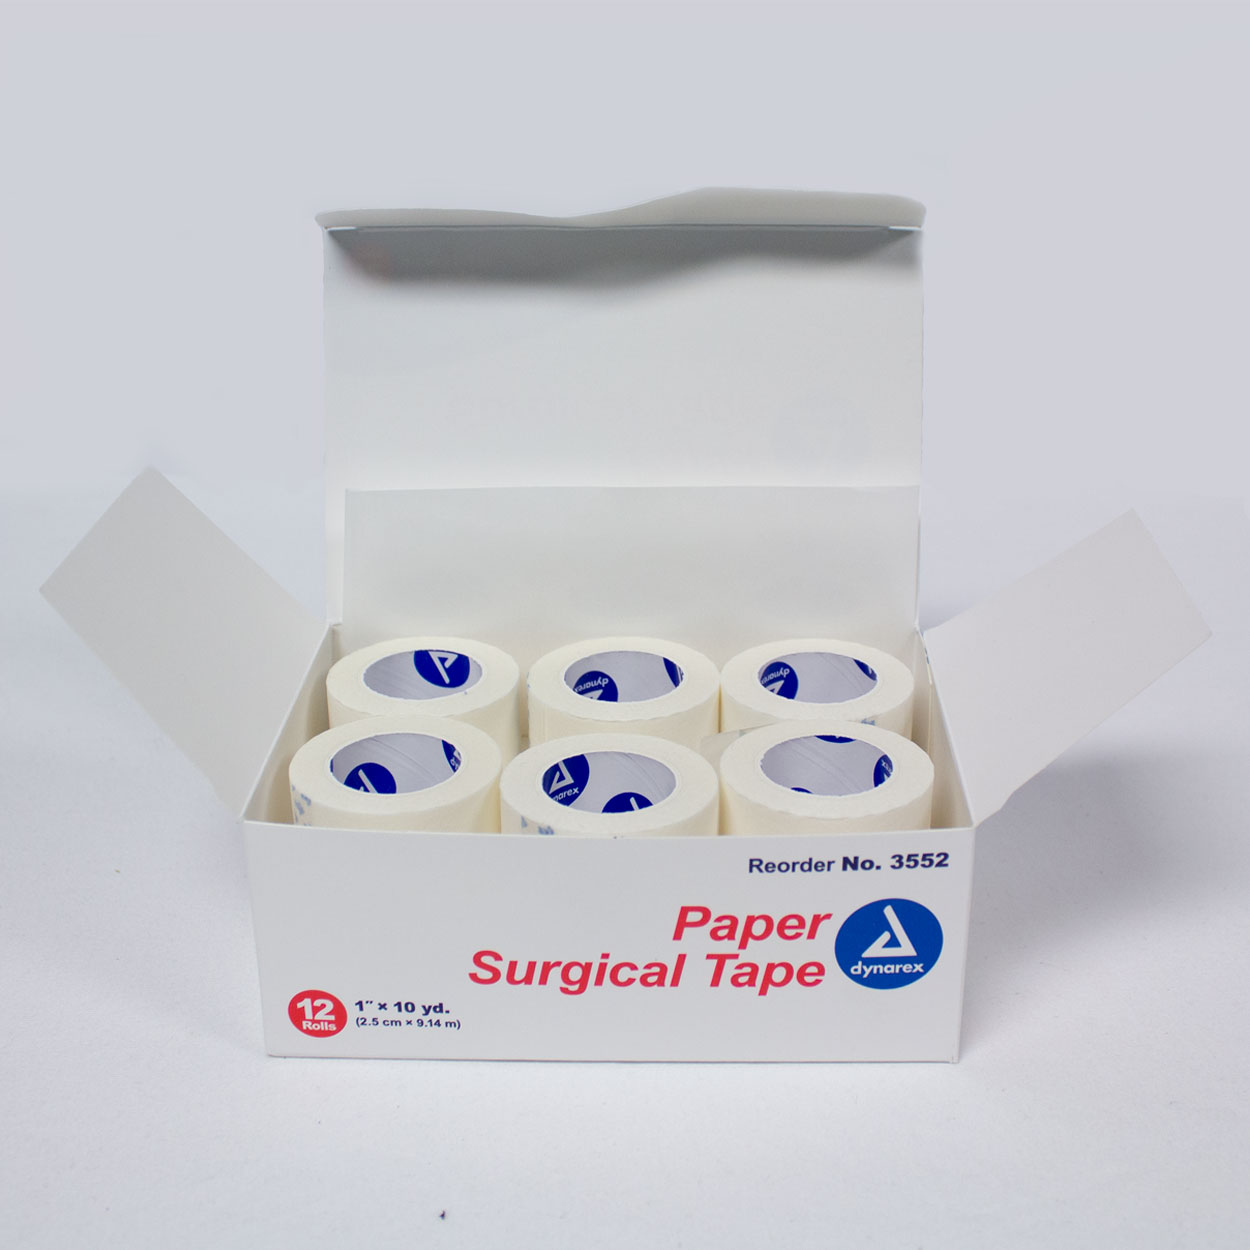 Paper surgical Tape - 1: x 10yards rolls - 12 rolls in a Box - Medical supply - Killer Silver